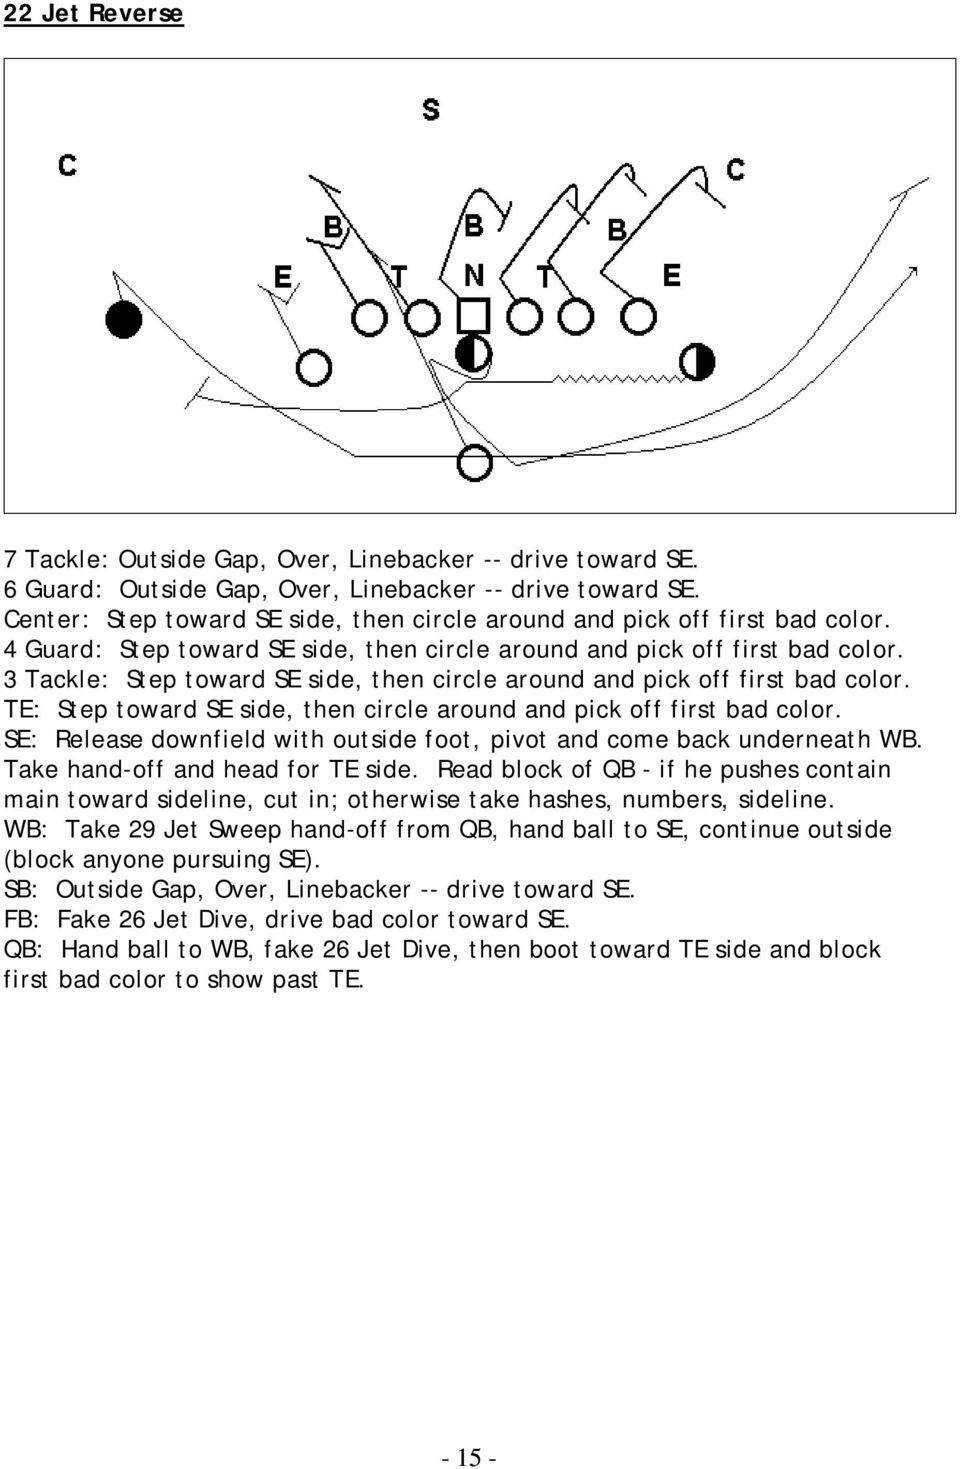 3 Tackle: Step toward SE side, then circle around and pick off first bad color. TE: Step toward SE side, then circle around and pick off first bad color.